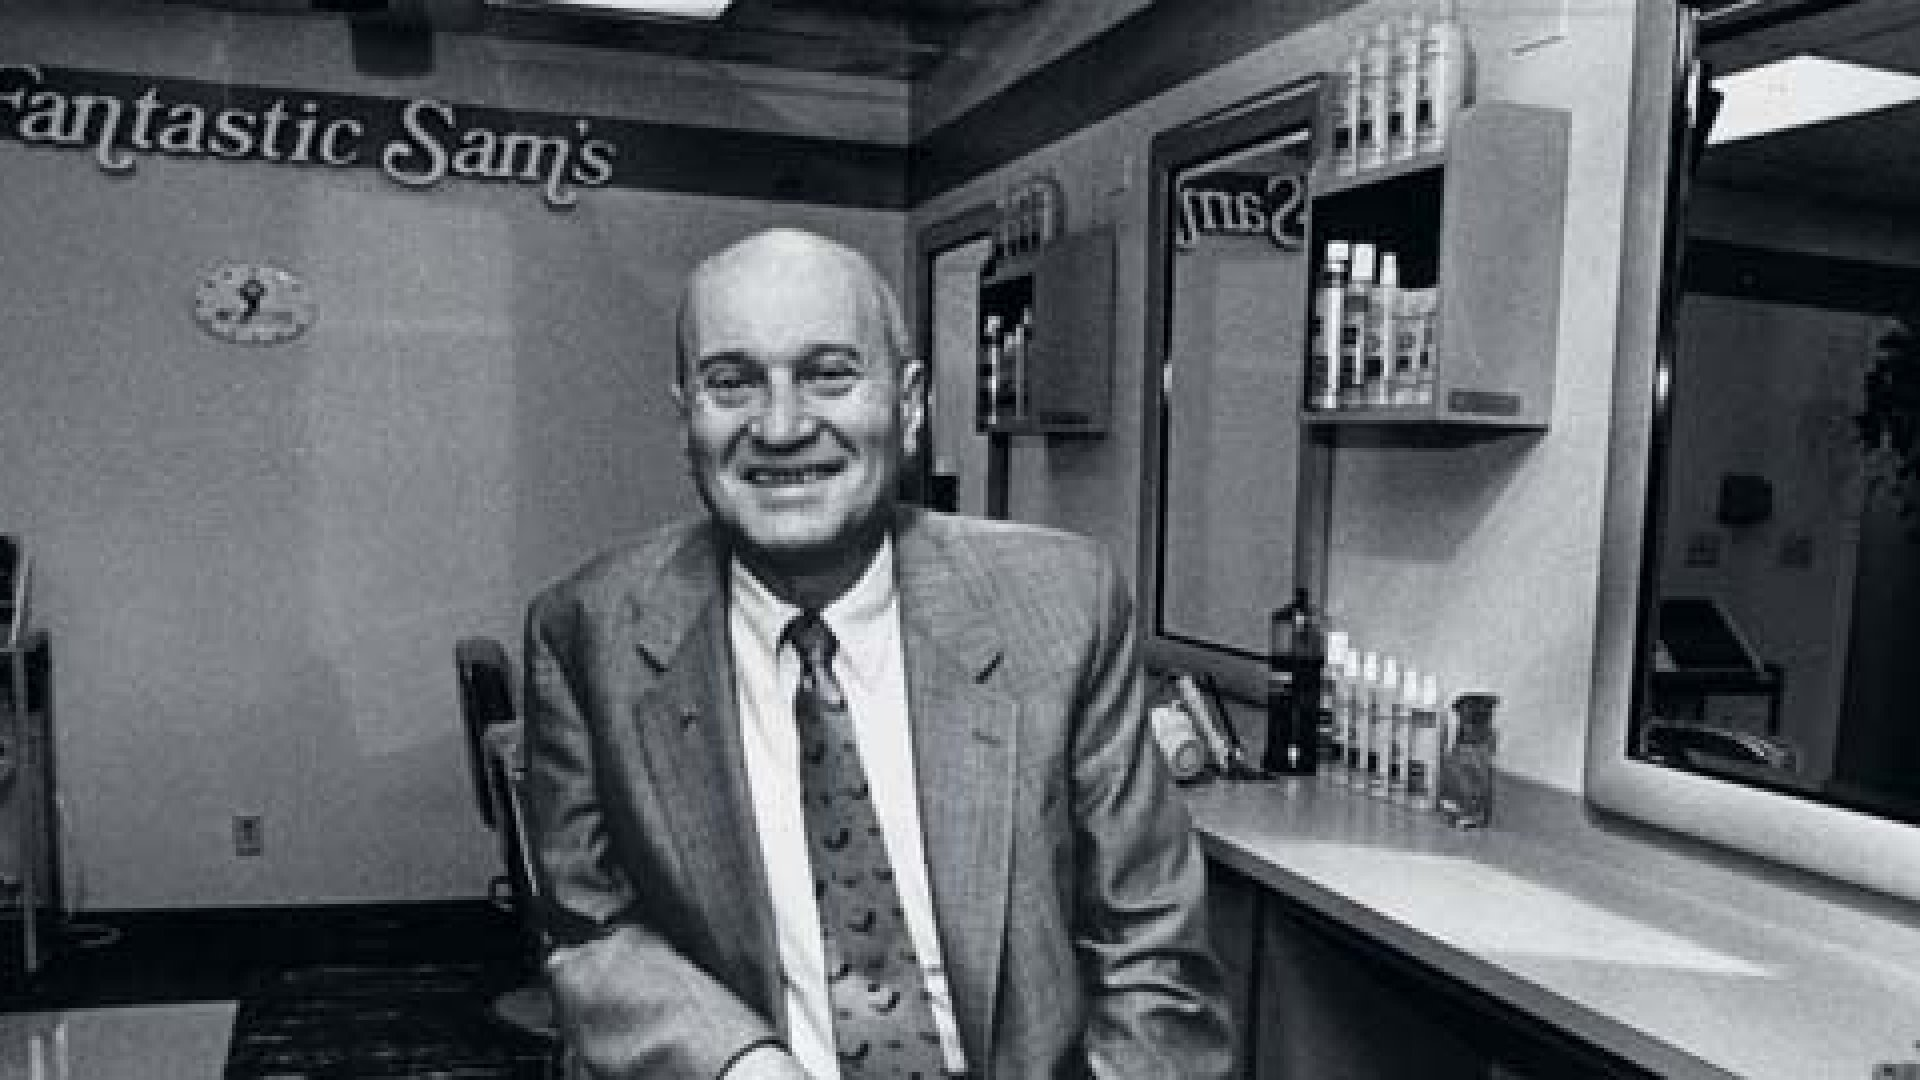 <strong>Get It Right</strong> Sam Ross in a Fantastic Sams training facility in 1990